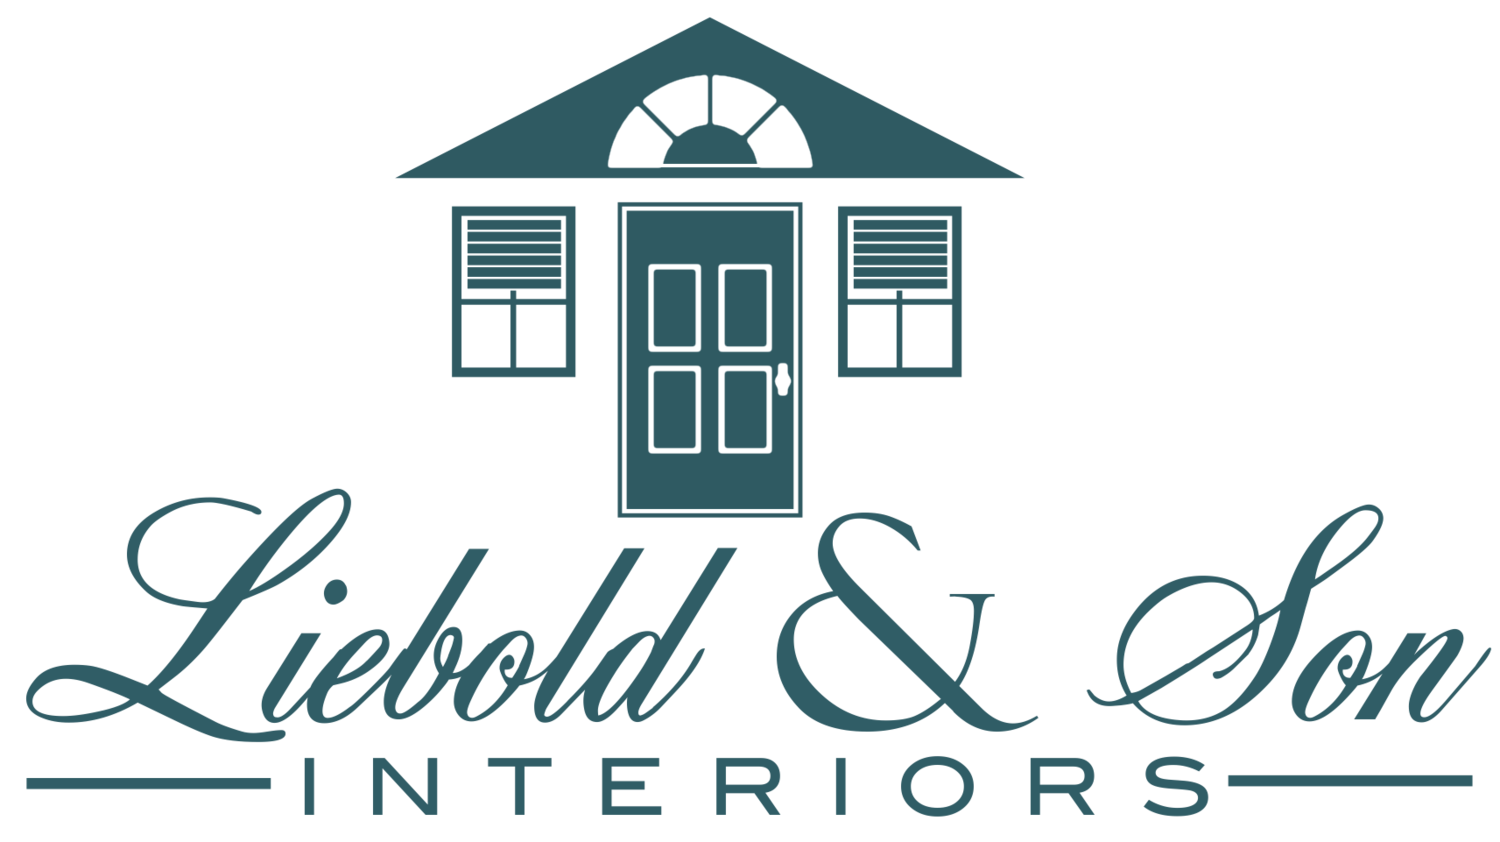 Liebold & Son Interiors